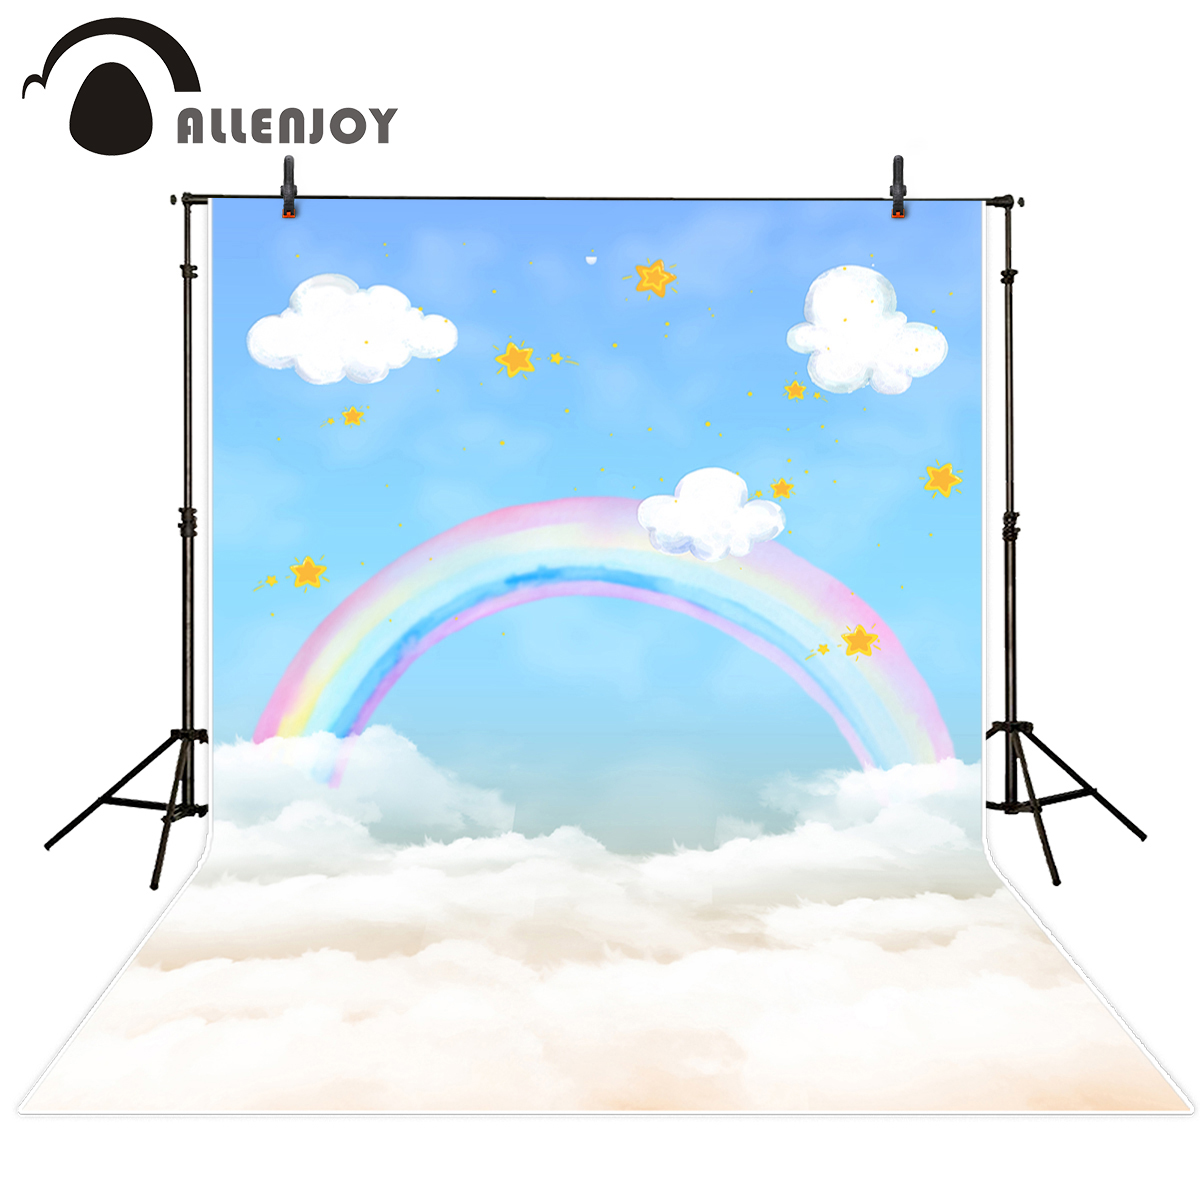 Allenjoy photography backdrops rainbow Clouds stars lovely backgrounds for children baby newborn photo backdrop Backgrounds allenjoy photography backdrops background gray sofa wall newborn girl bed headboard children baby shower studio